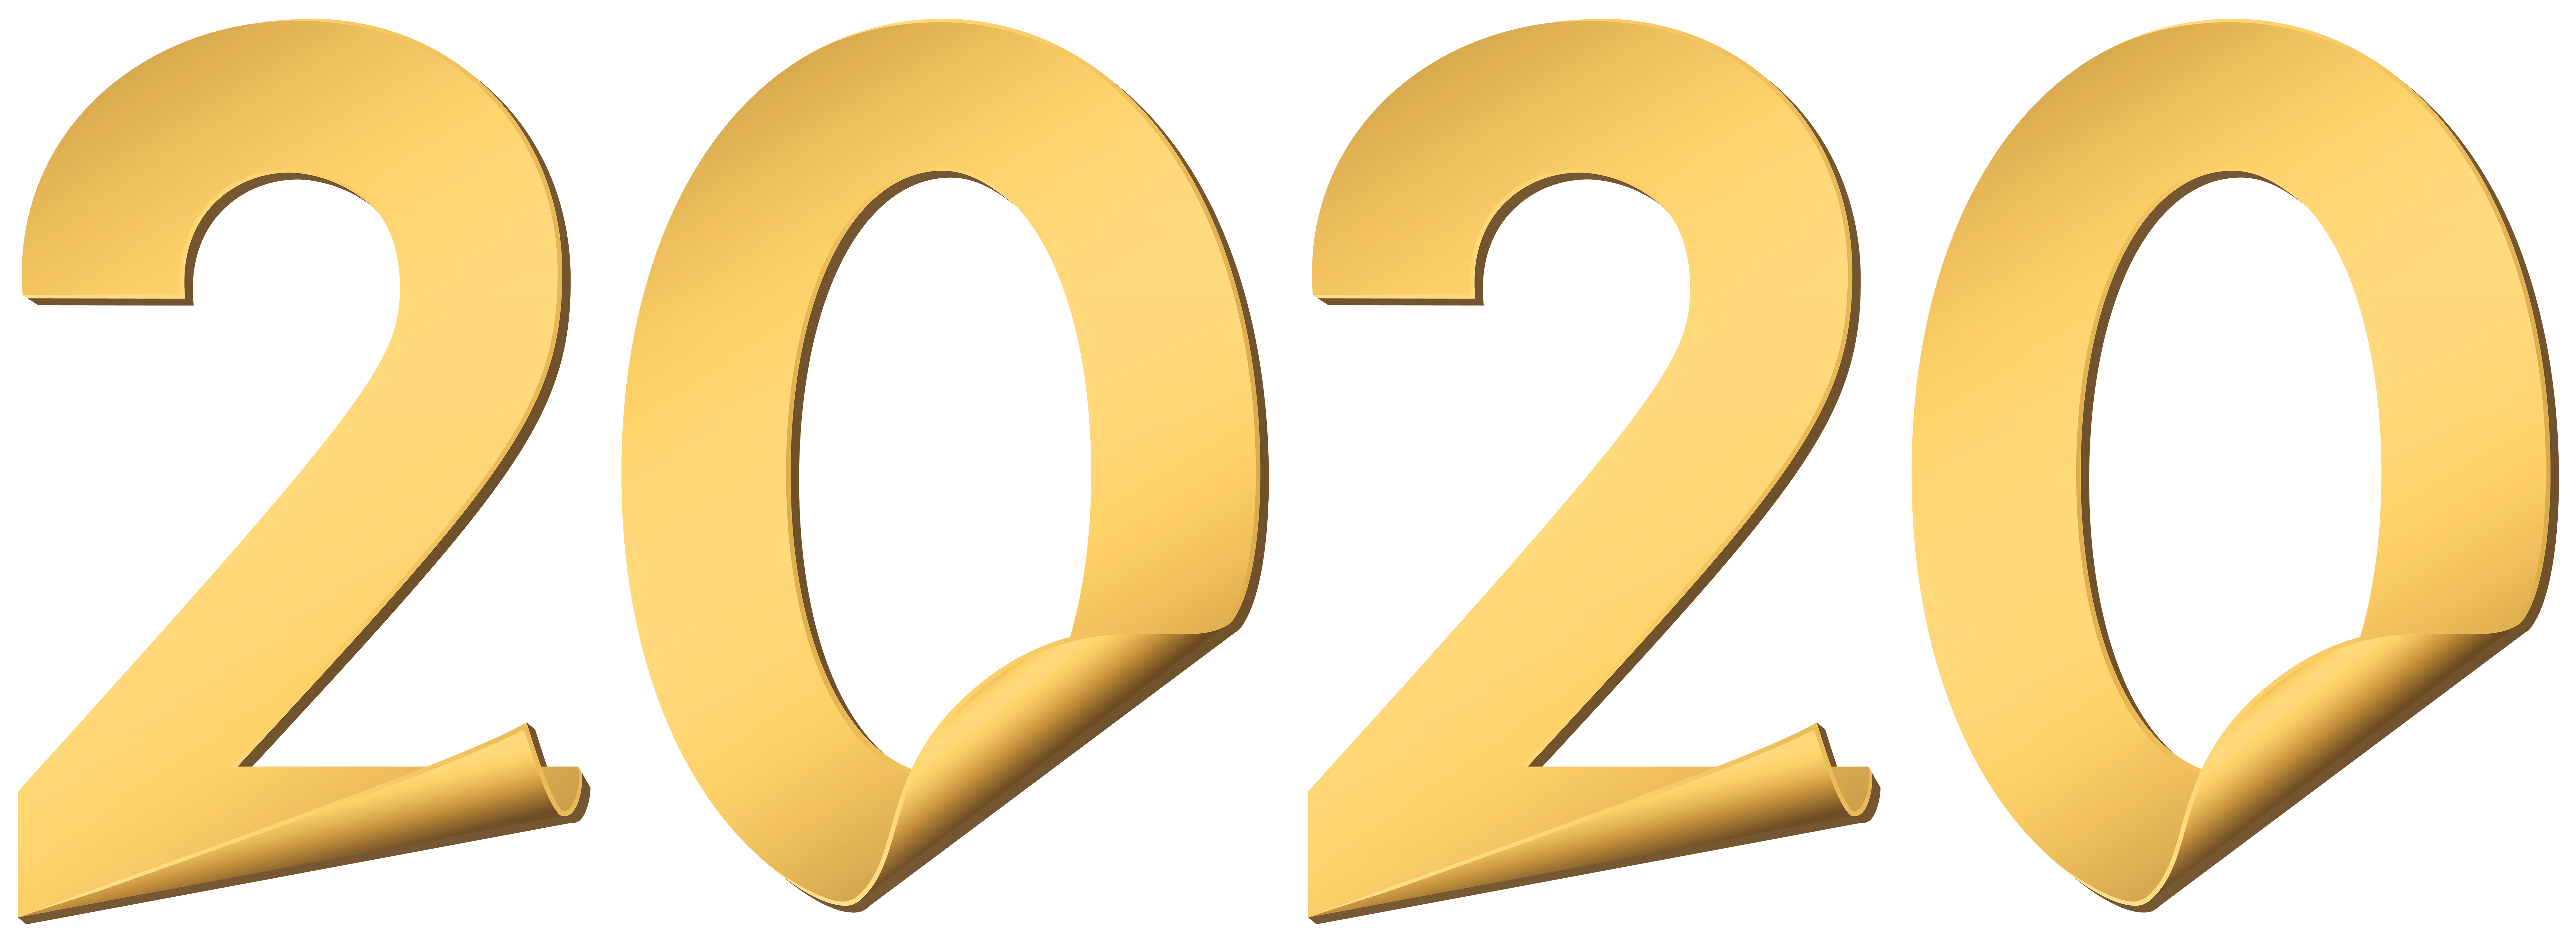 2020 Gold Style PNG Clipart.